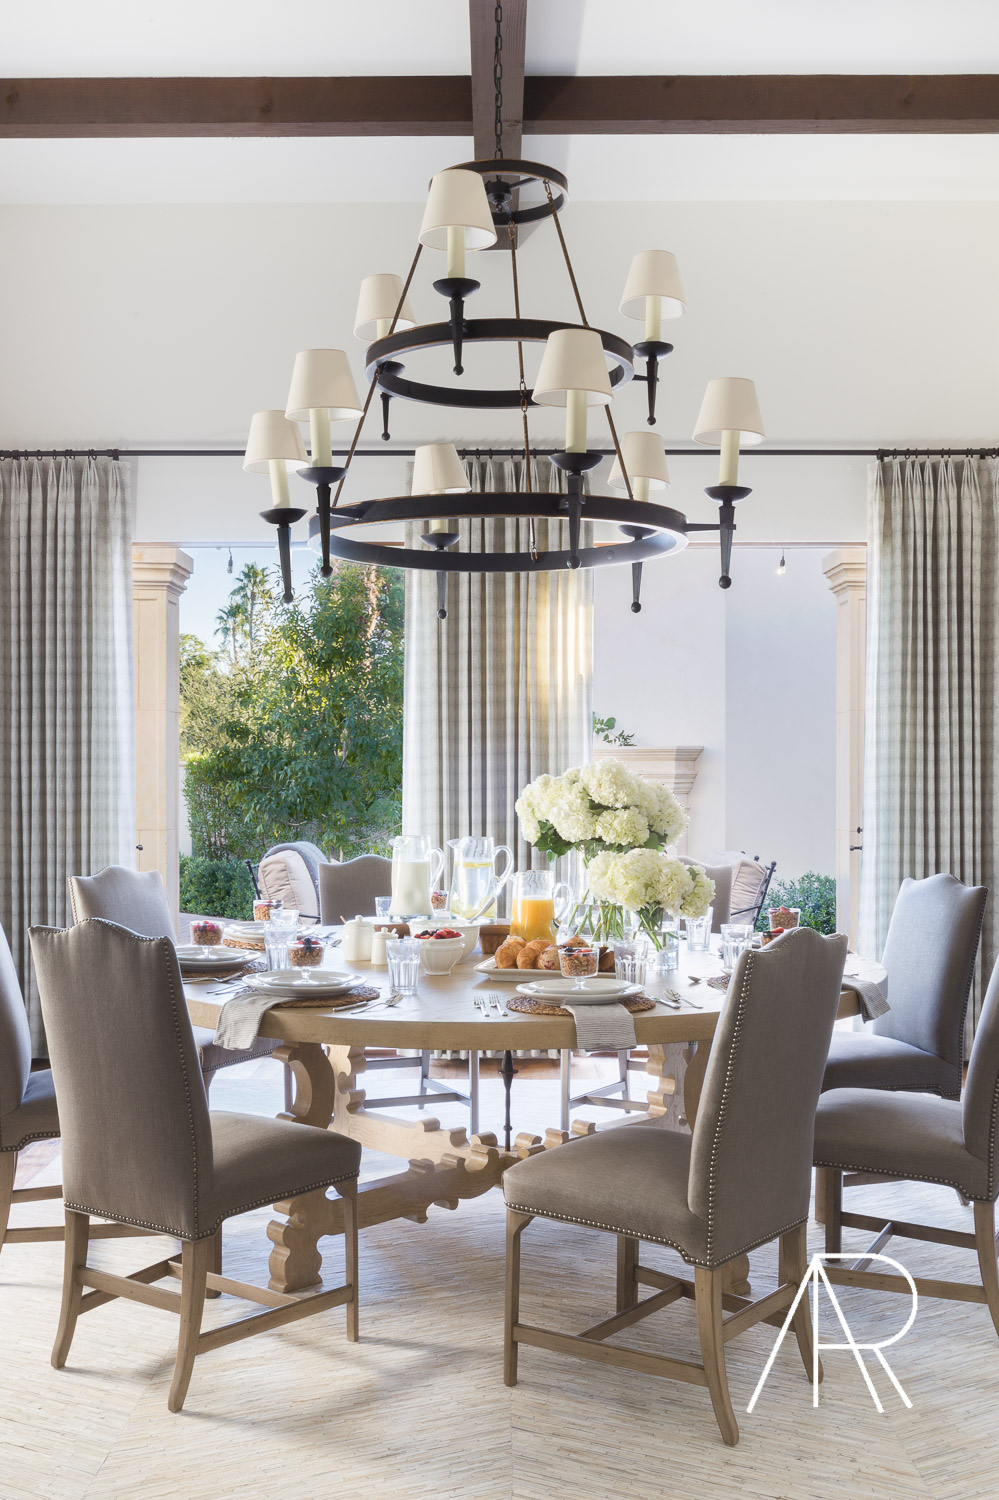 ©AlyssaRosenheck Scottsdale AZ Dining Room with Mydomaine and Bria Hammel Interiors